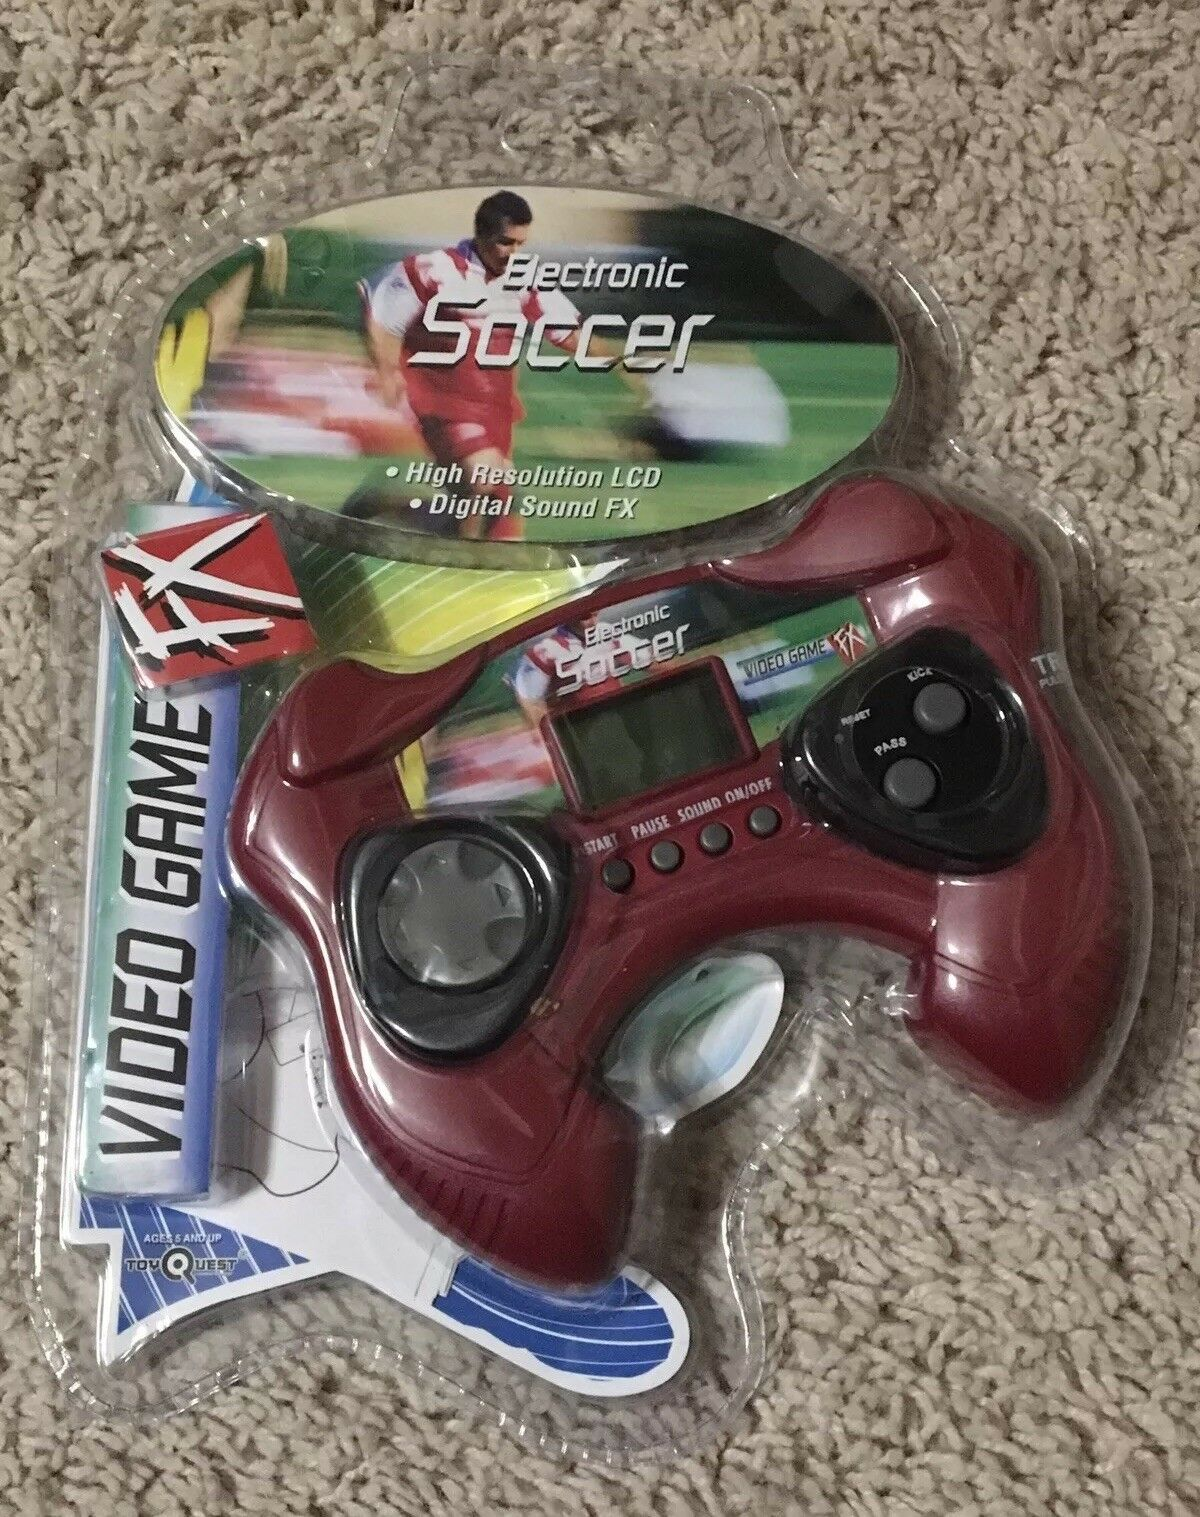 NEW Toy Quest Electronic Soccer Handheld Video Game LCD FX Red